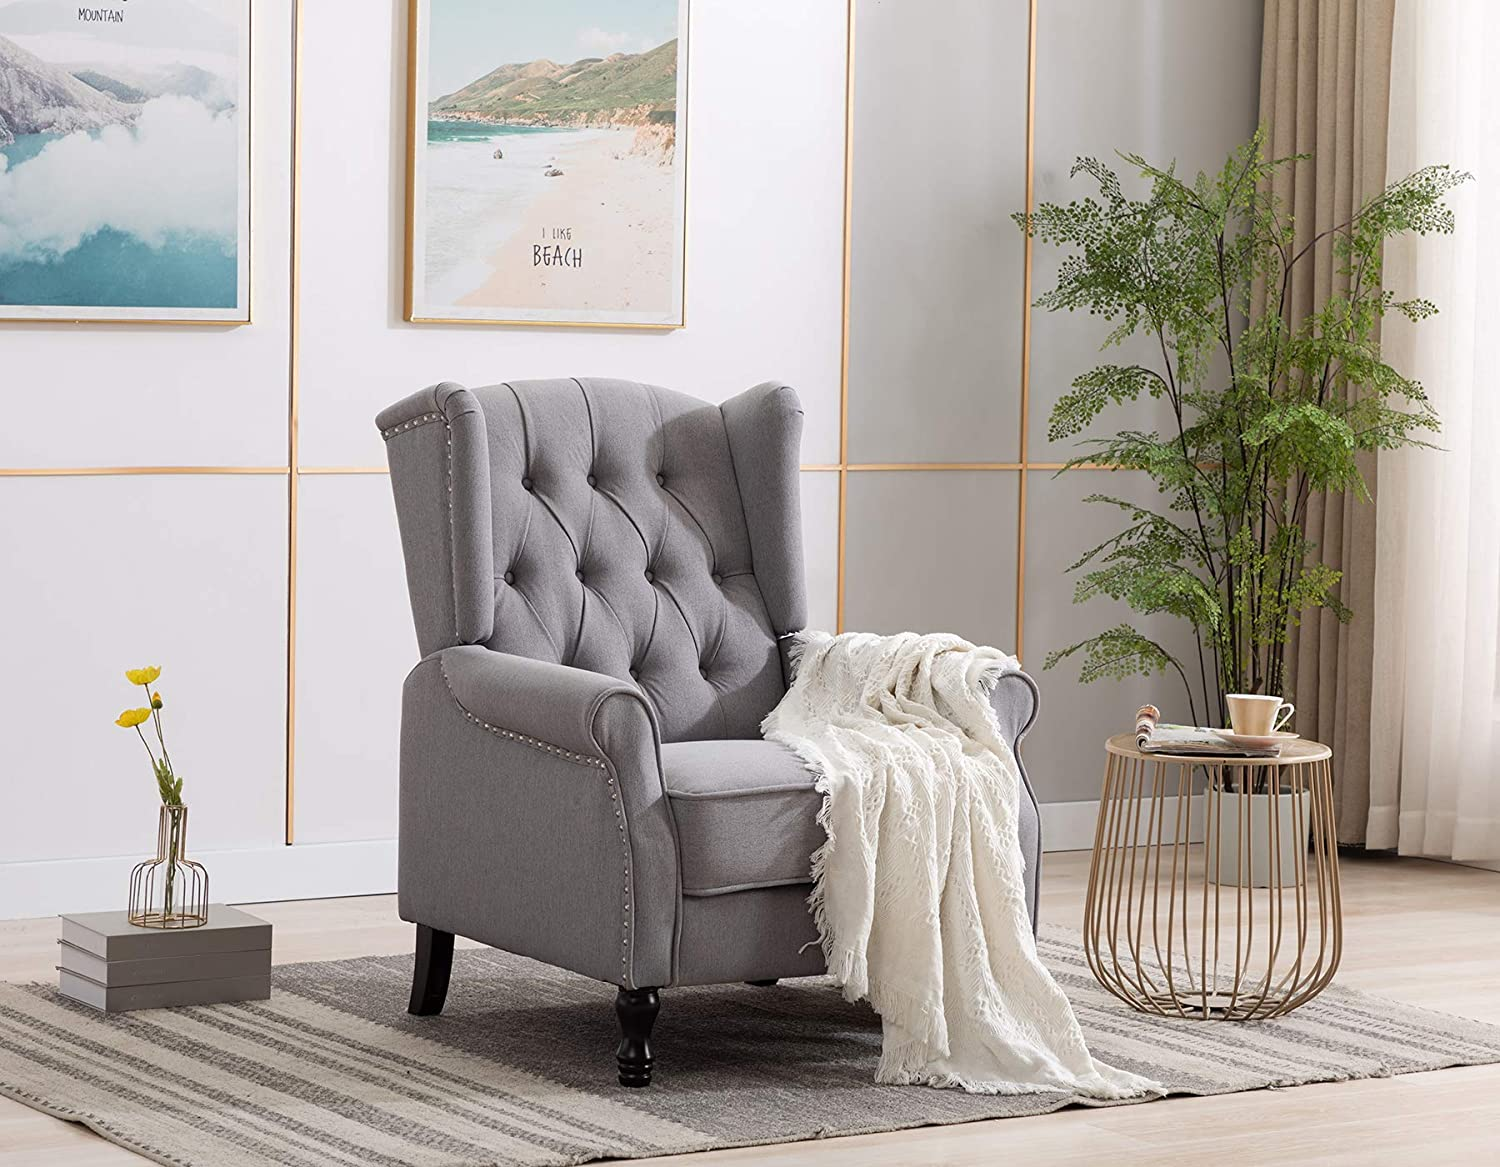 Artechworks Winged Fabric Modern Accent Chair Tufted Arm Club Chair Linen Single Sofa with Wooden Legs Comfy Upholstered for Reading Living Room Bedroom Office,Grey